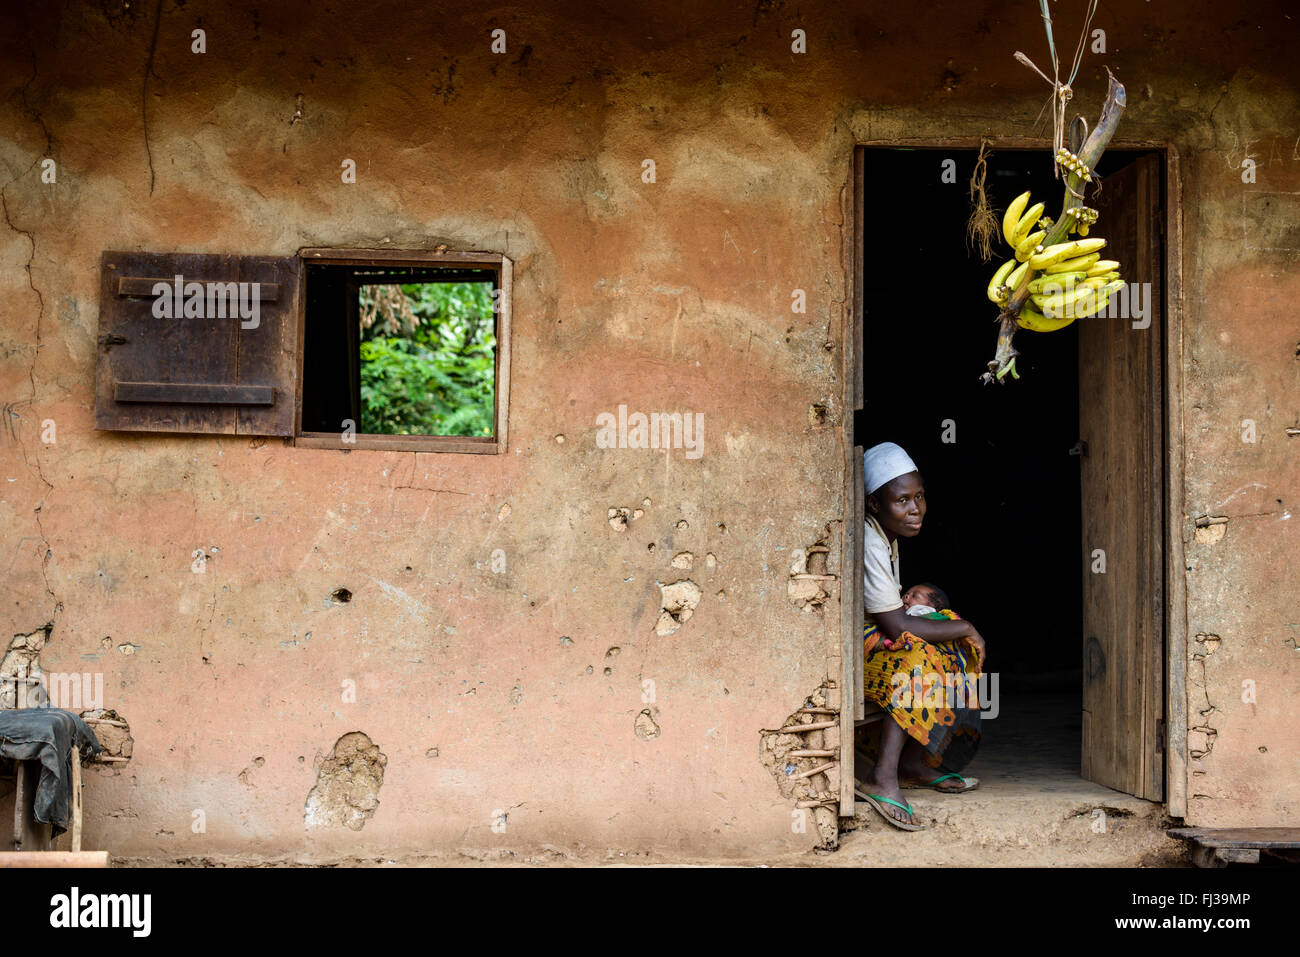 Woman with baby, Cameroon, Africa - Stock Image